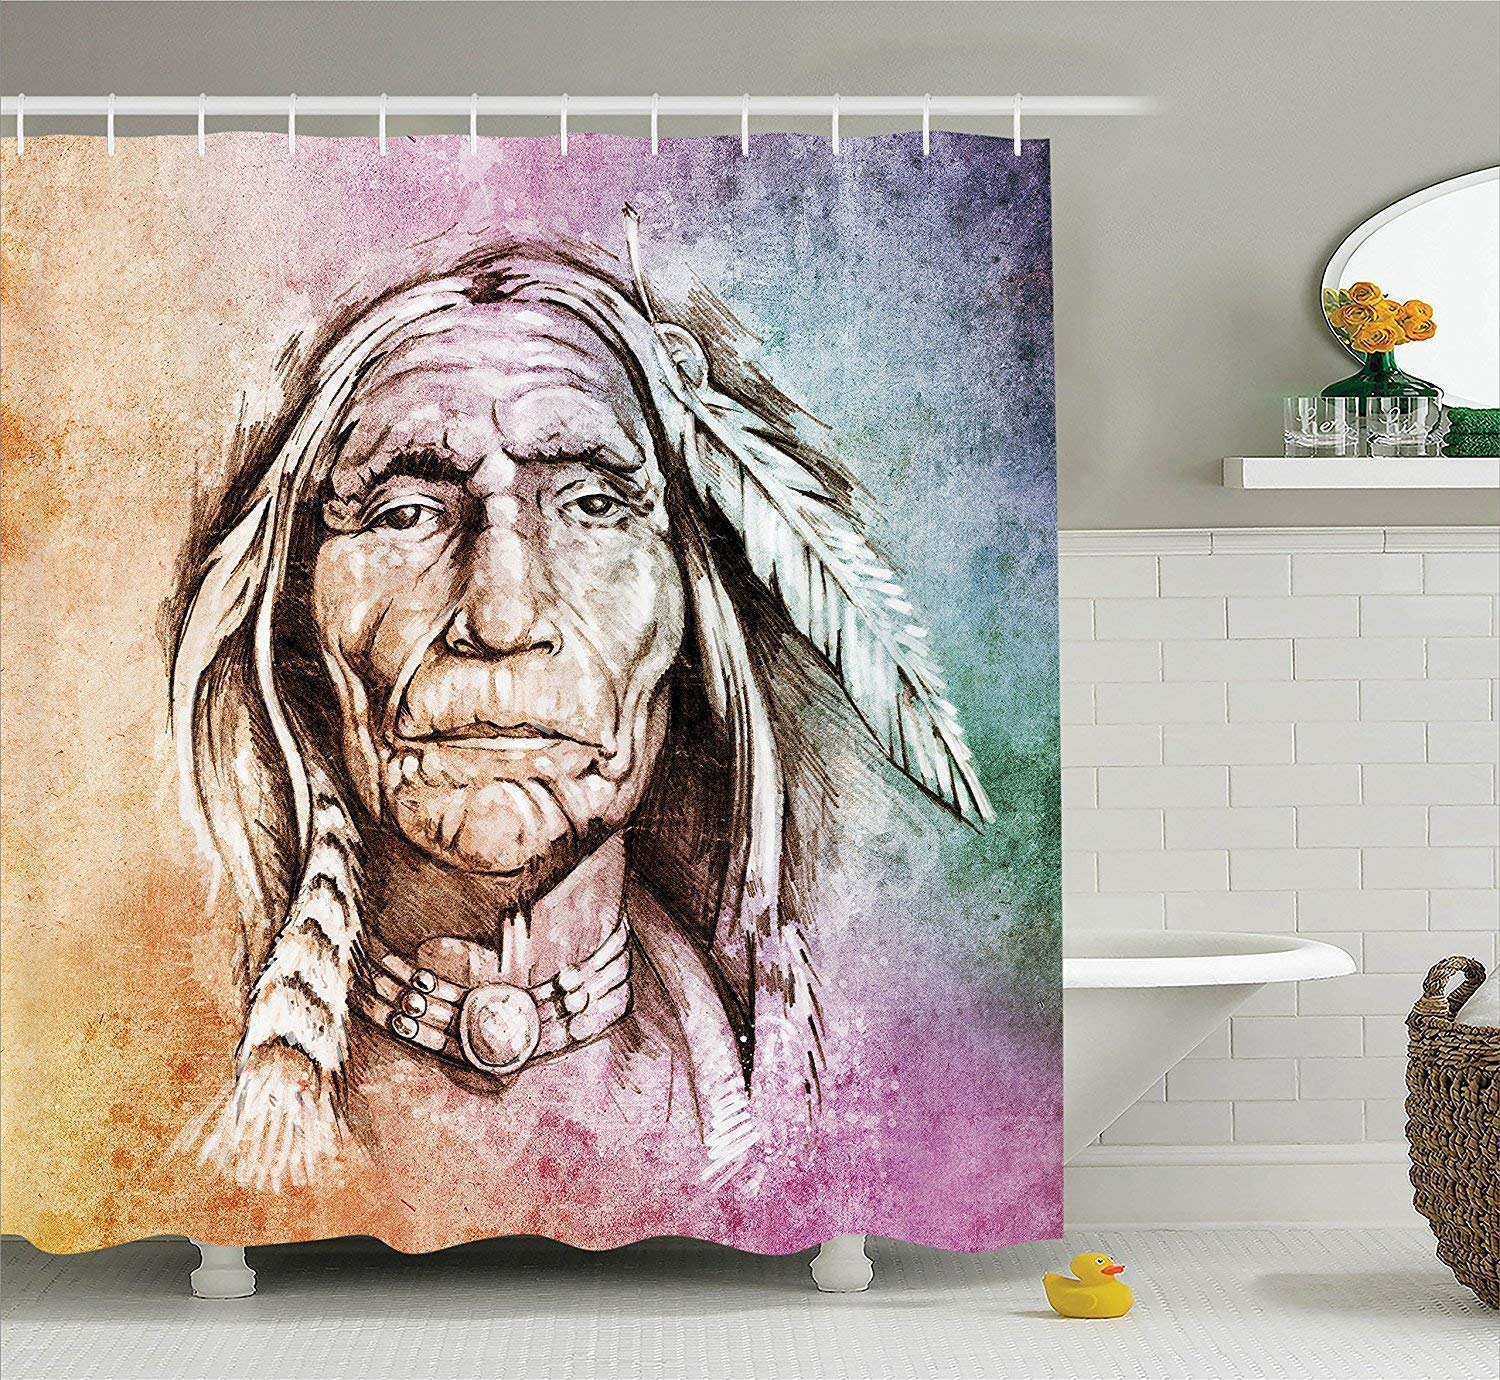 werert Native American Curtain, Shower Curtain, American Portrait of Tribal Chief with Ethnic Feather Band Watercolor Style Image, Fabric Bathroom Decor Set with Hooks, 60 X 72 a322a5